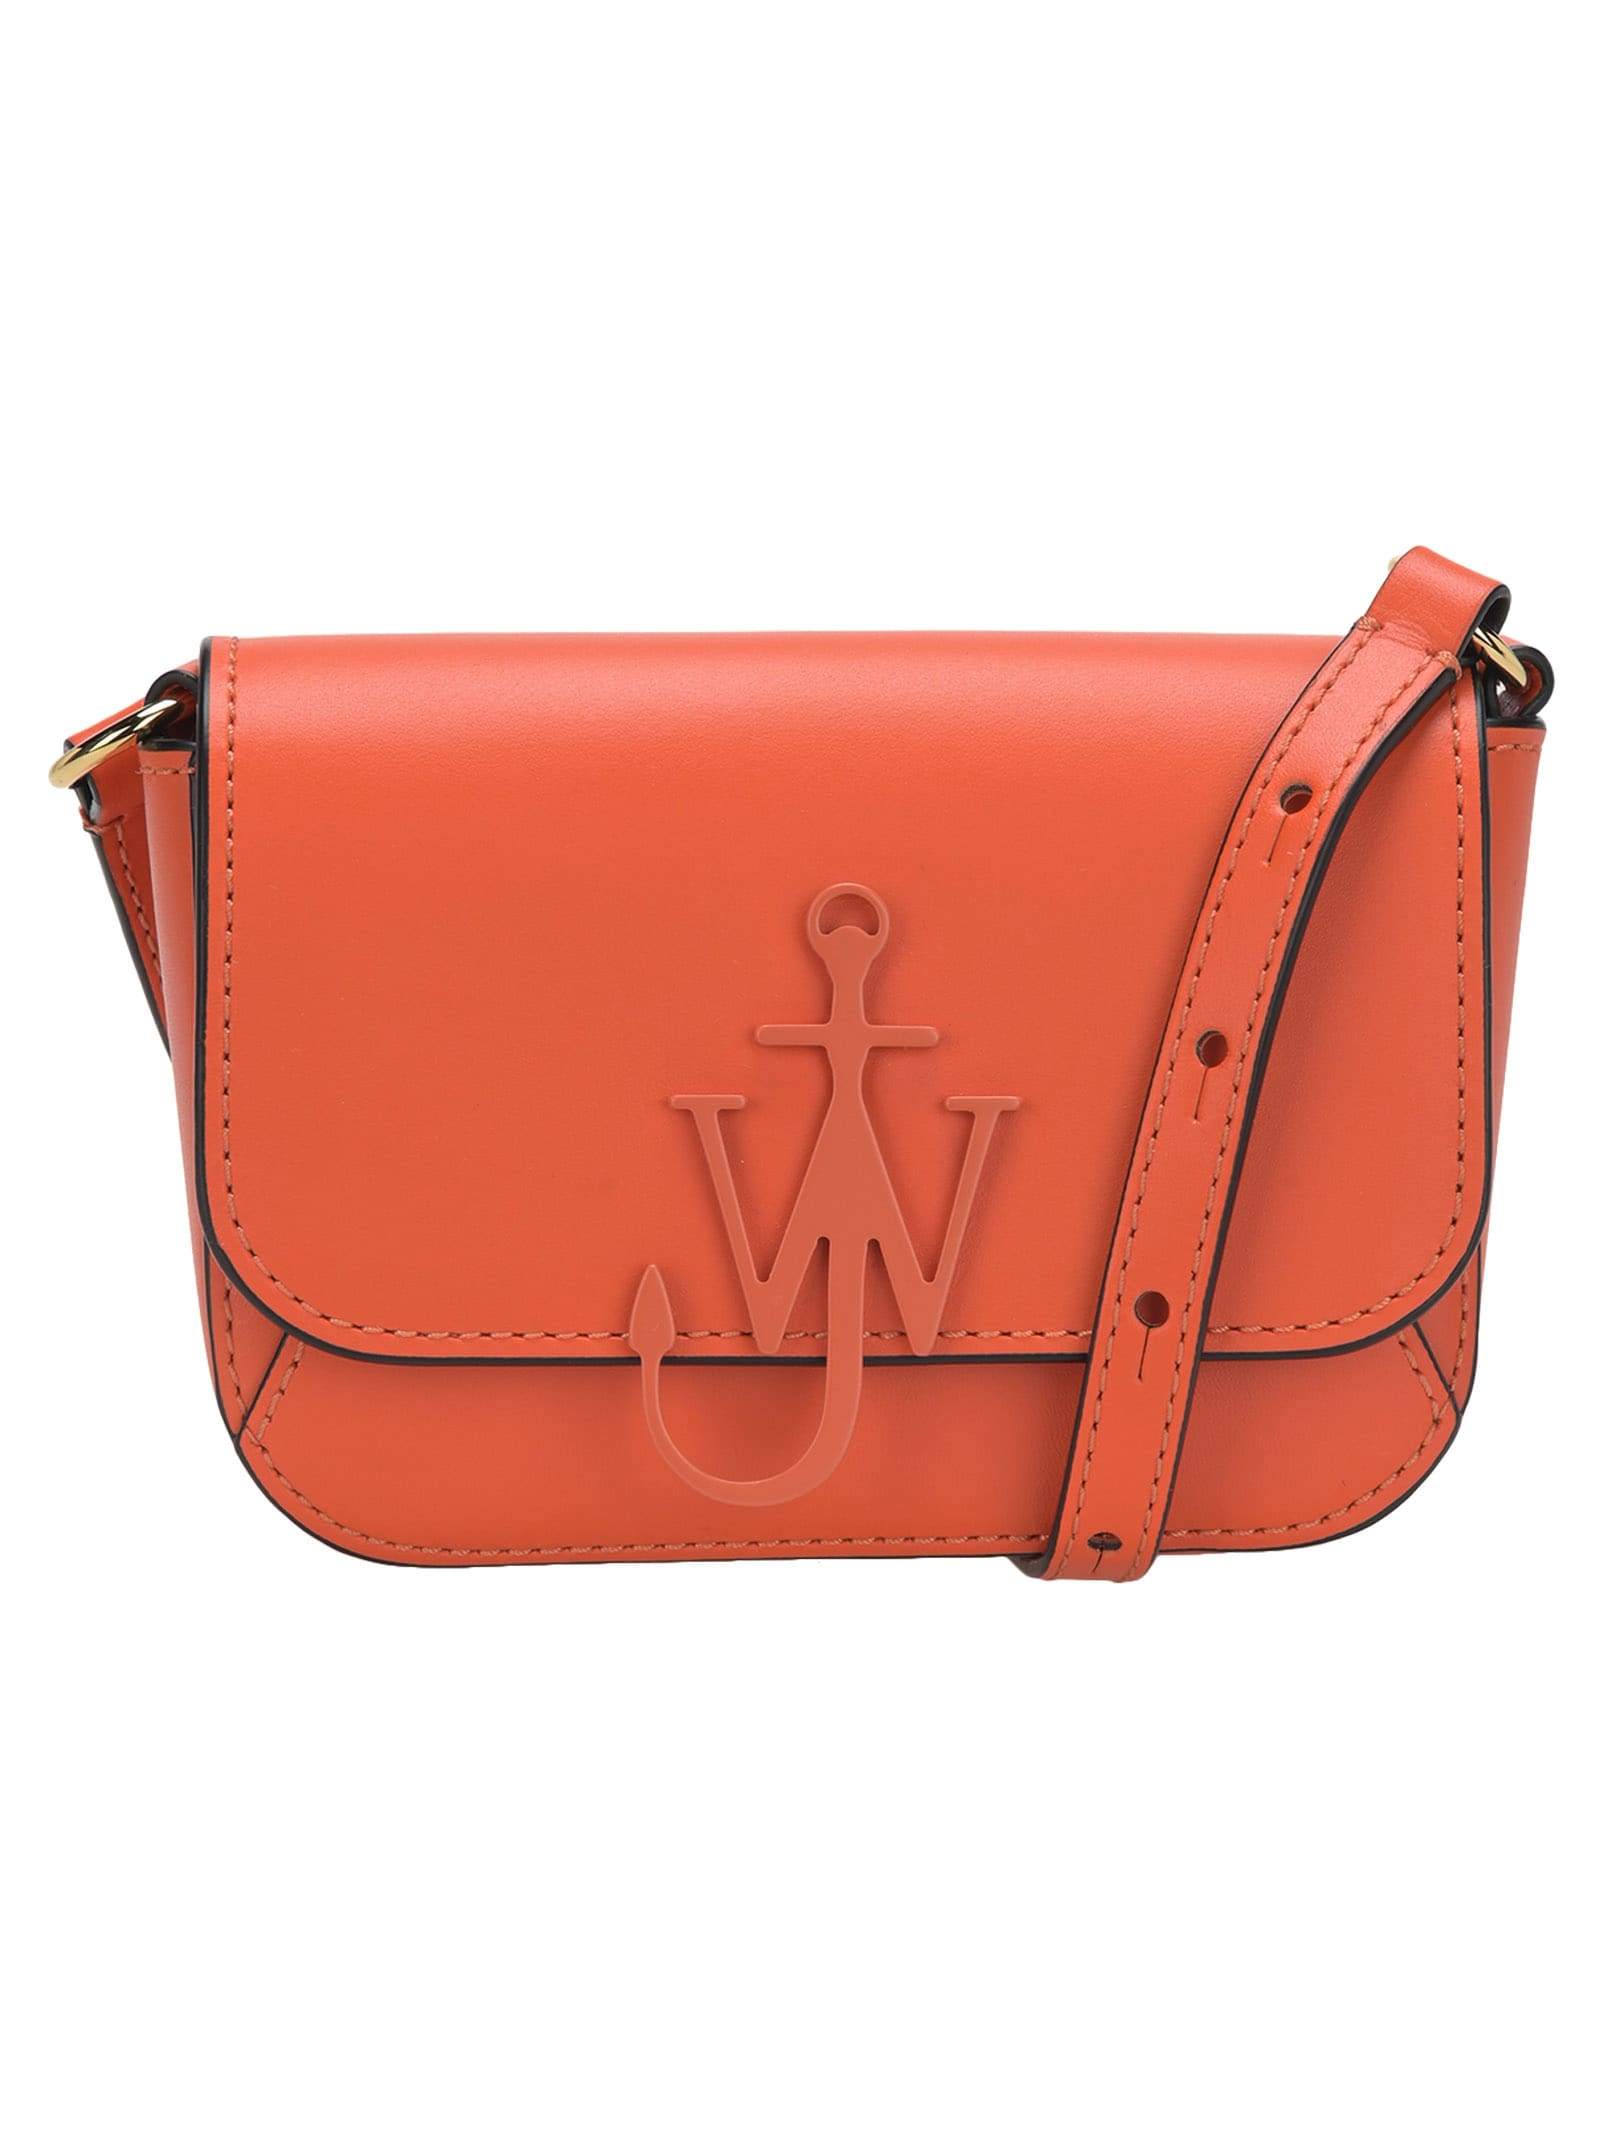 Jw Anderson Leathers JW ANDERSON NANO ANCHOR BAG